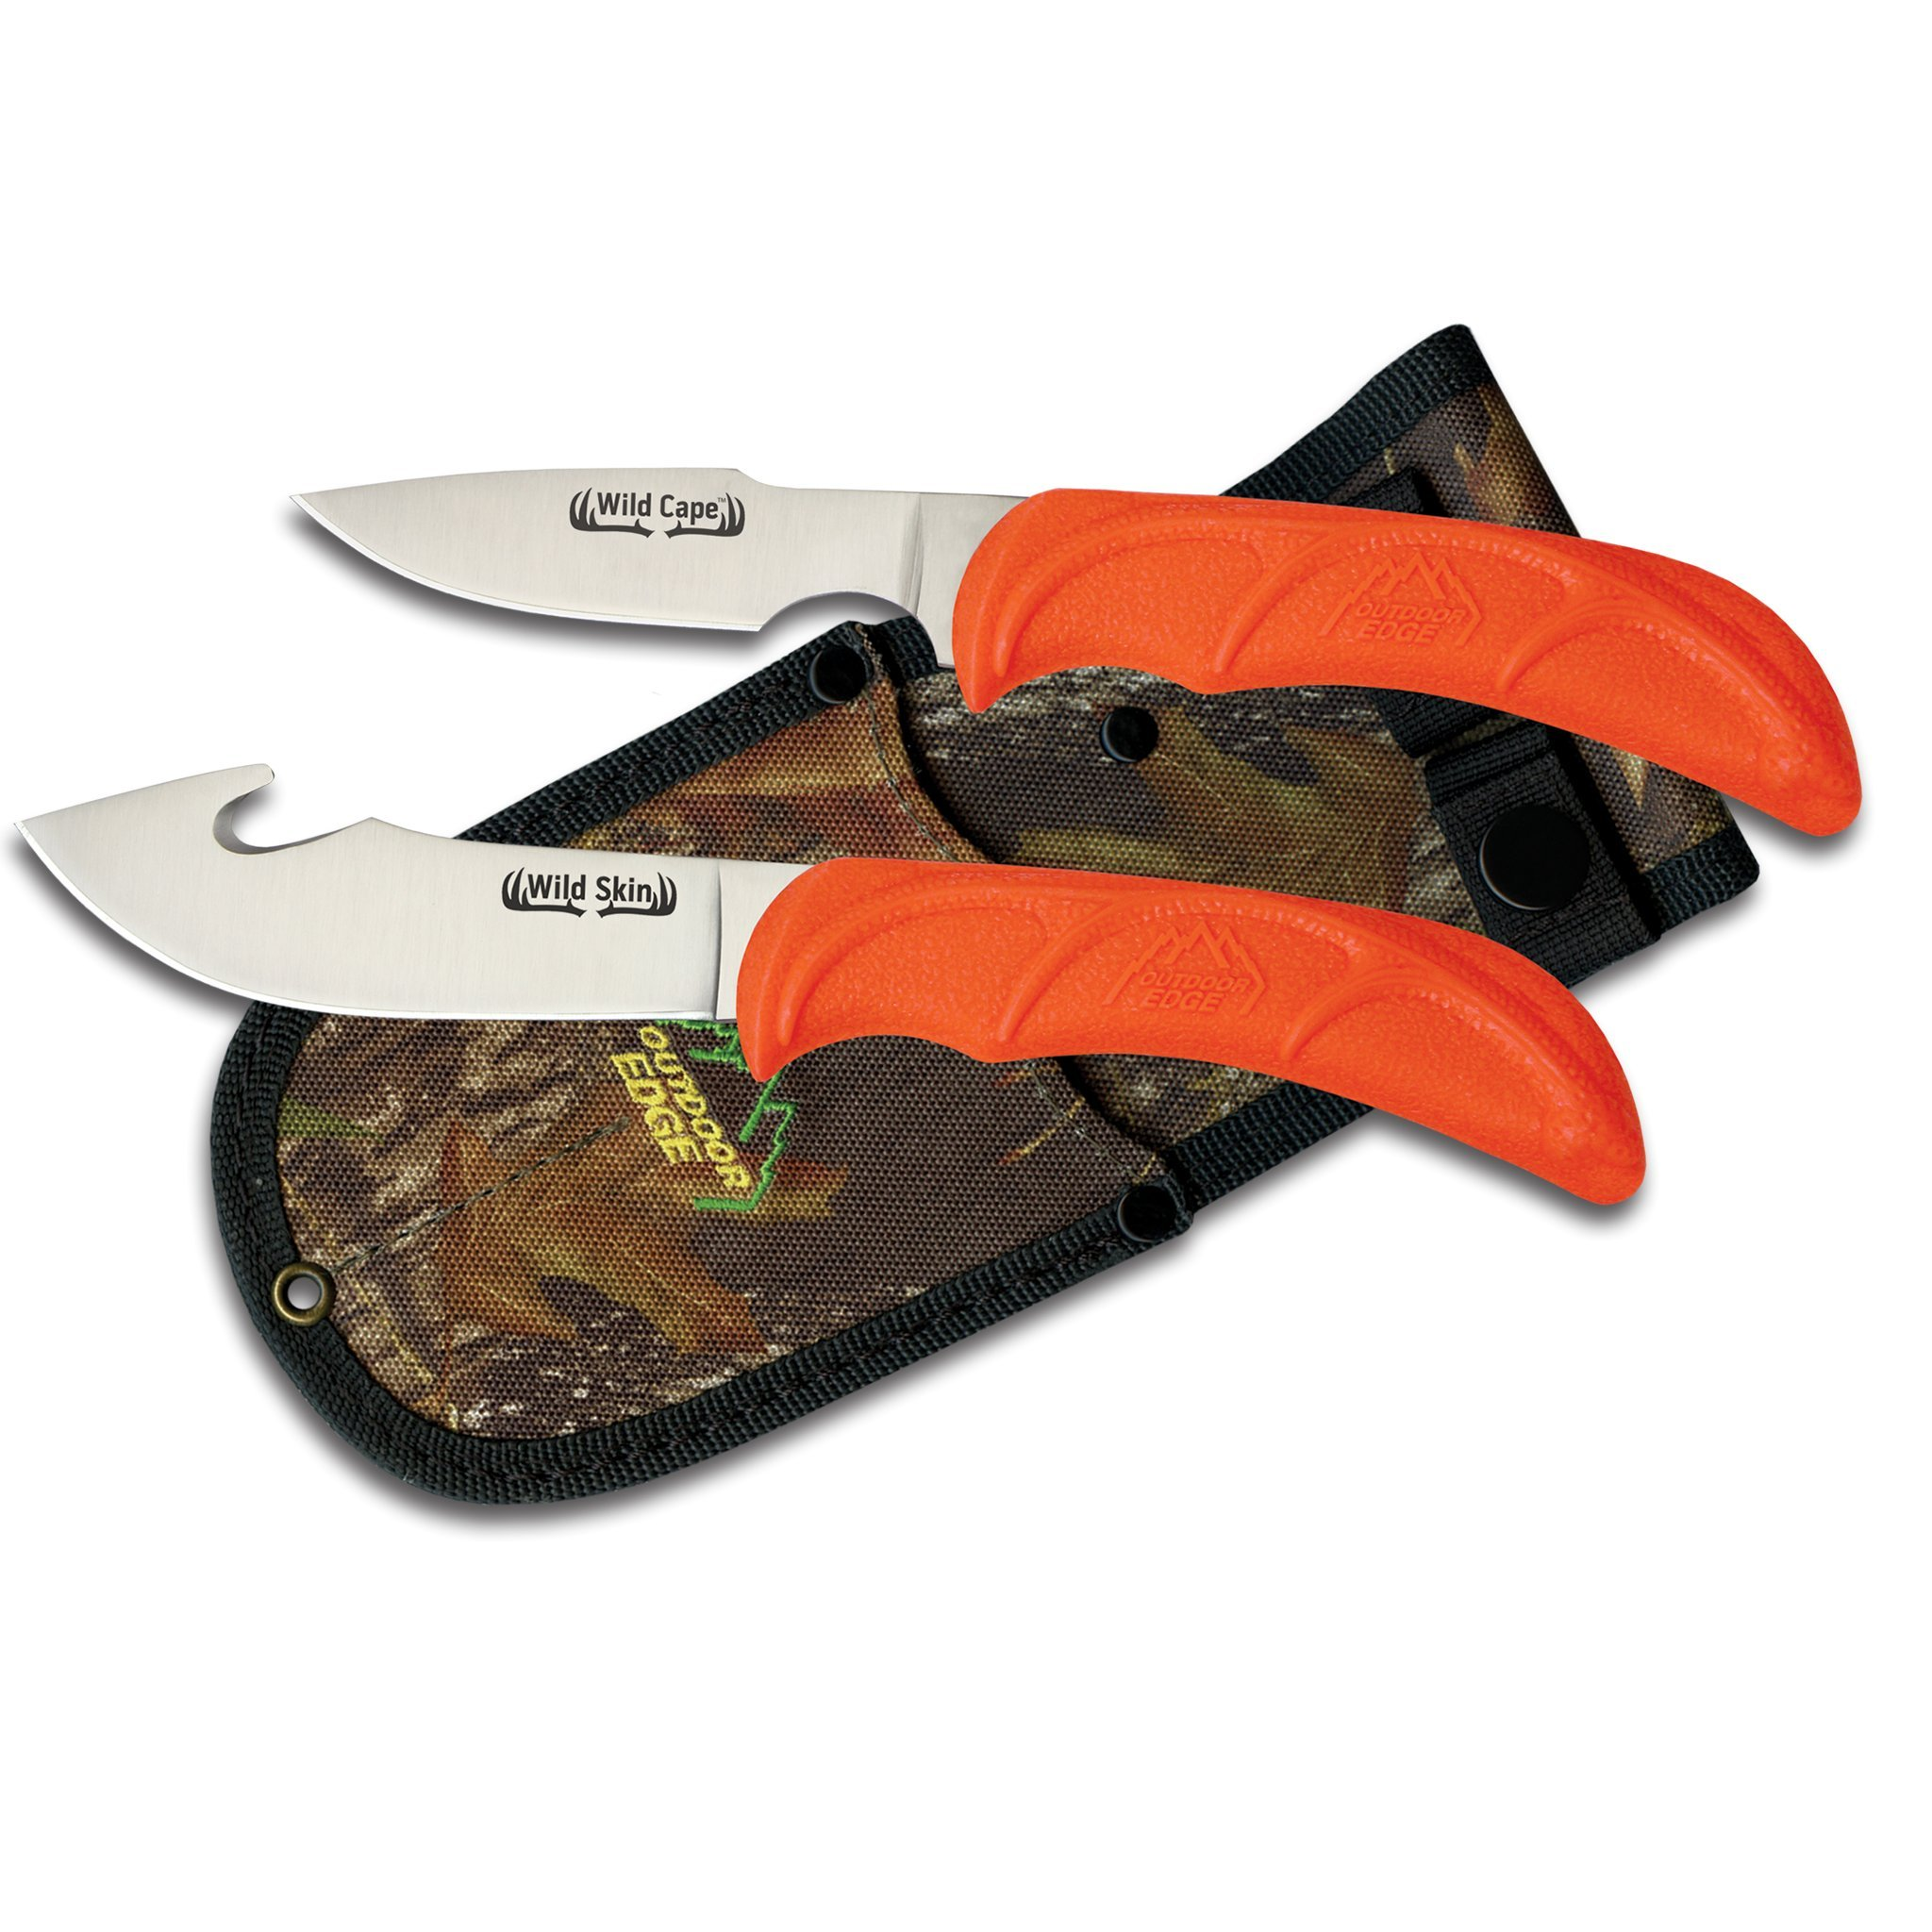 Outdoor Edge WildPair, WR-1C, Skinning and Caping Fixed Blade Hunting Knife Combo with Mossy Oak Camo Sheath